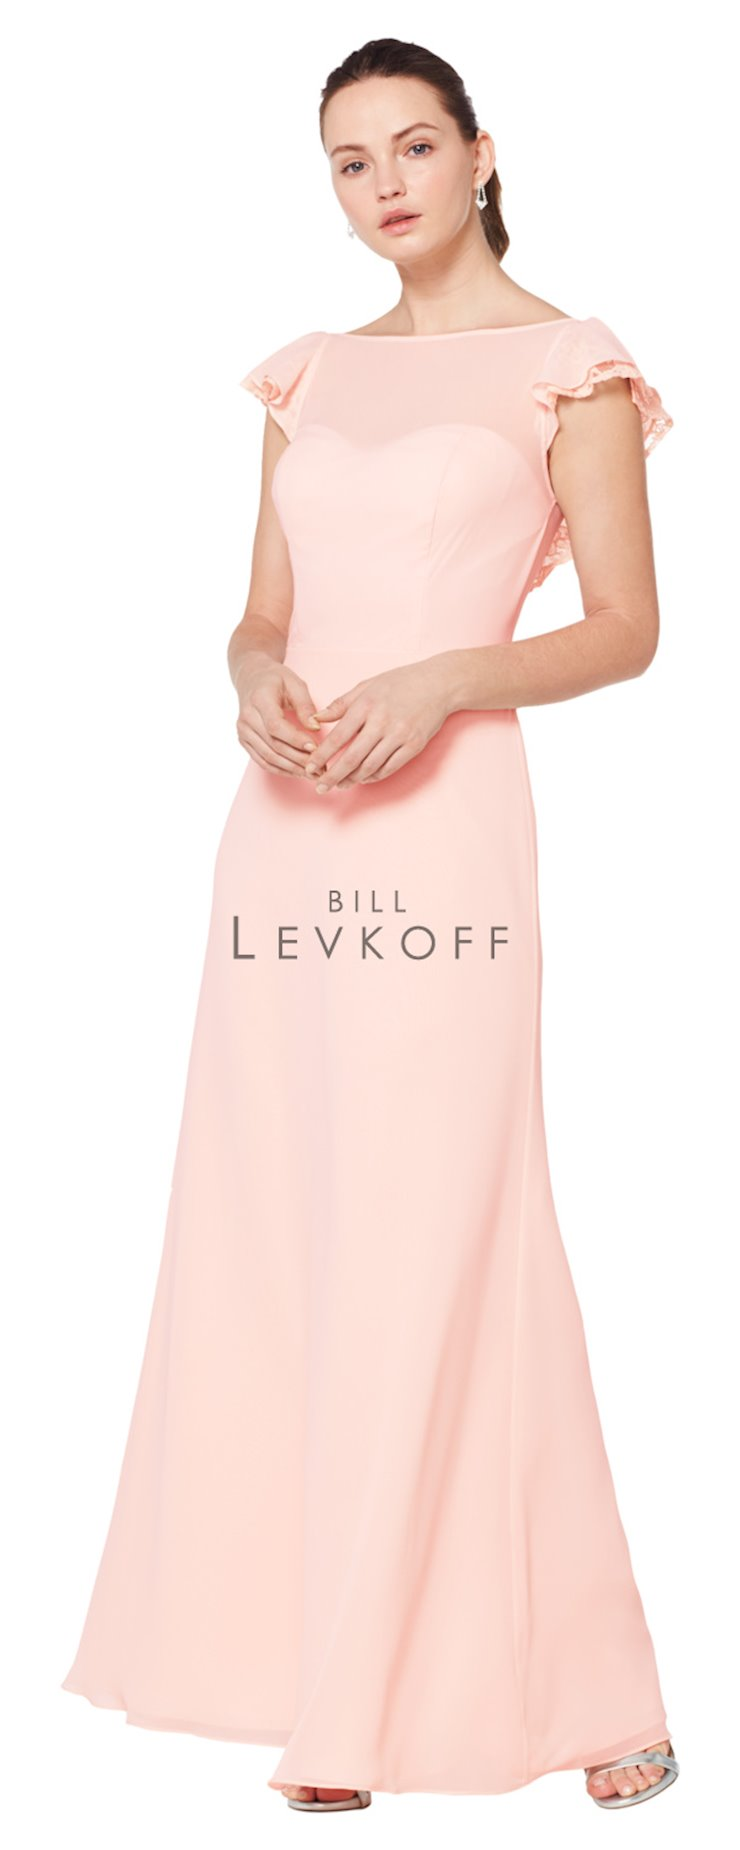 Bill Levkoff Style #1611 Image